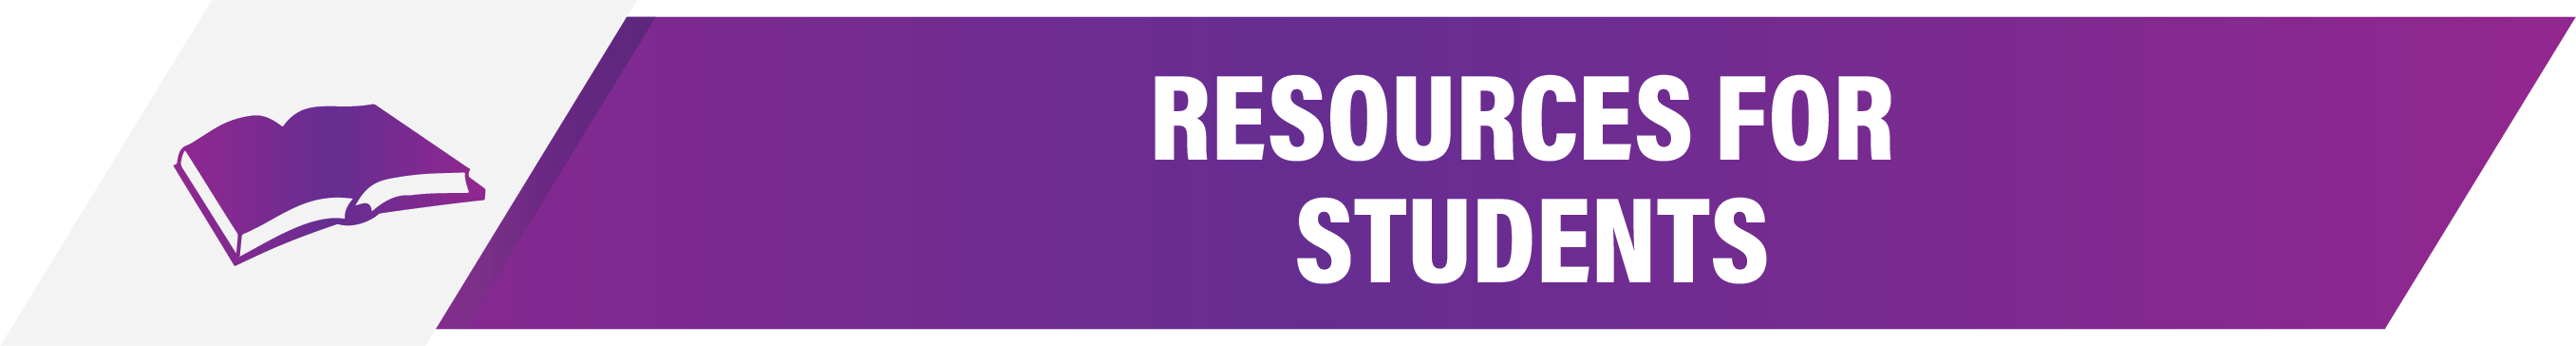 Solano College Resources for Students, white text on dark Purple background with image of a open book to the right.